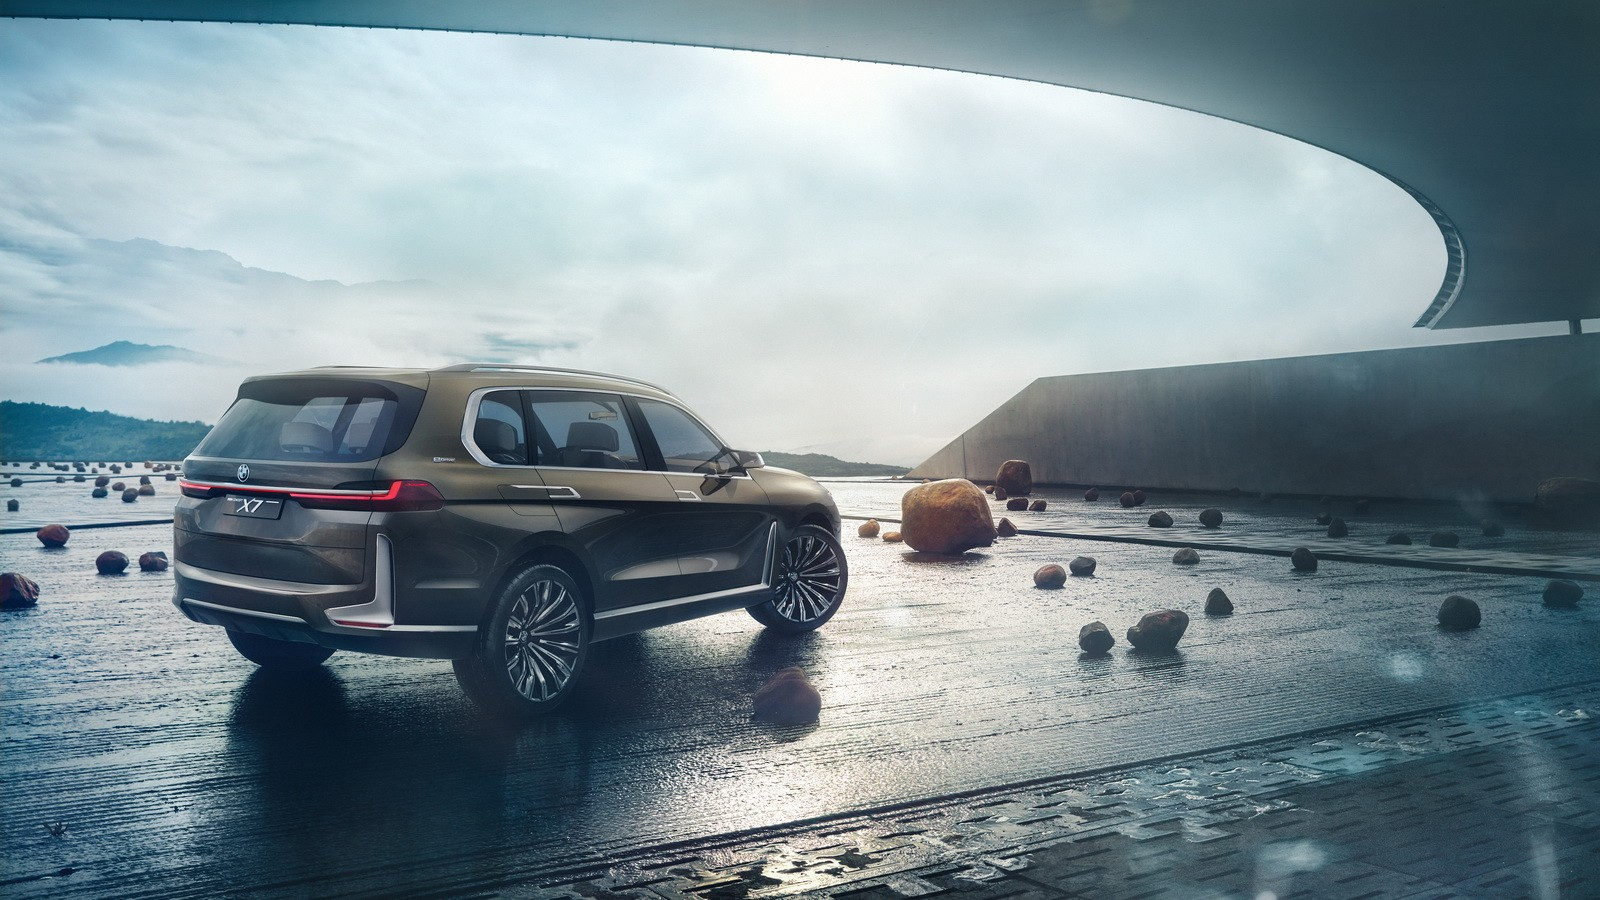 2019 bmw x7 sav edges closer to production concept looks opulent autoevolution. Black Bedroom Furniture Sets. Home Design Ideas